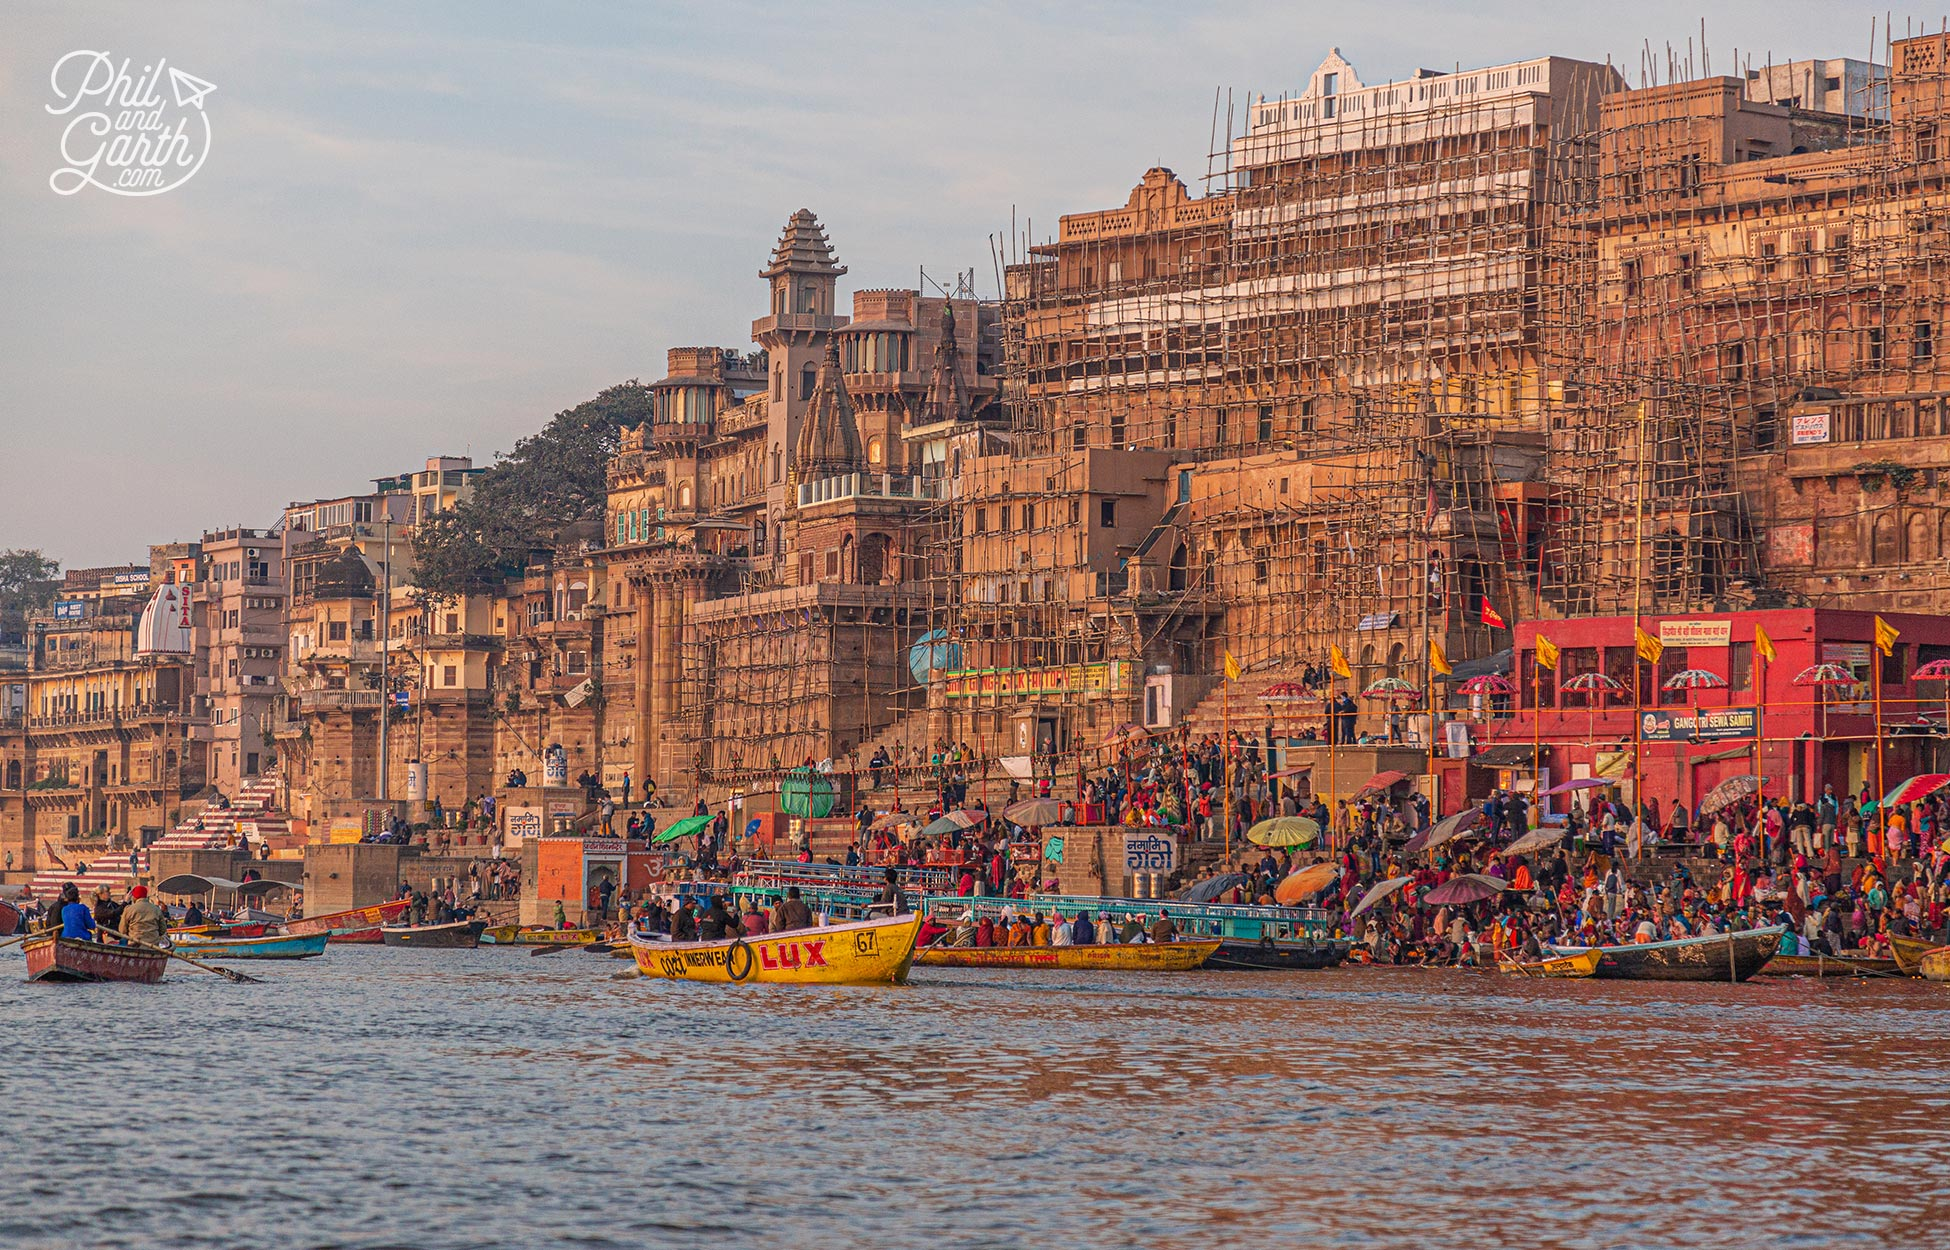 The Varanasi ghats are a hive of activity first thing in the morning